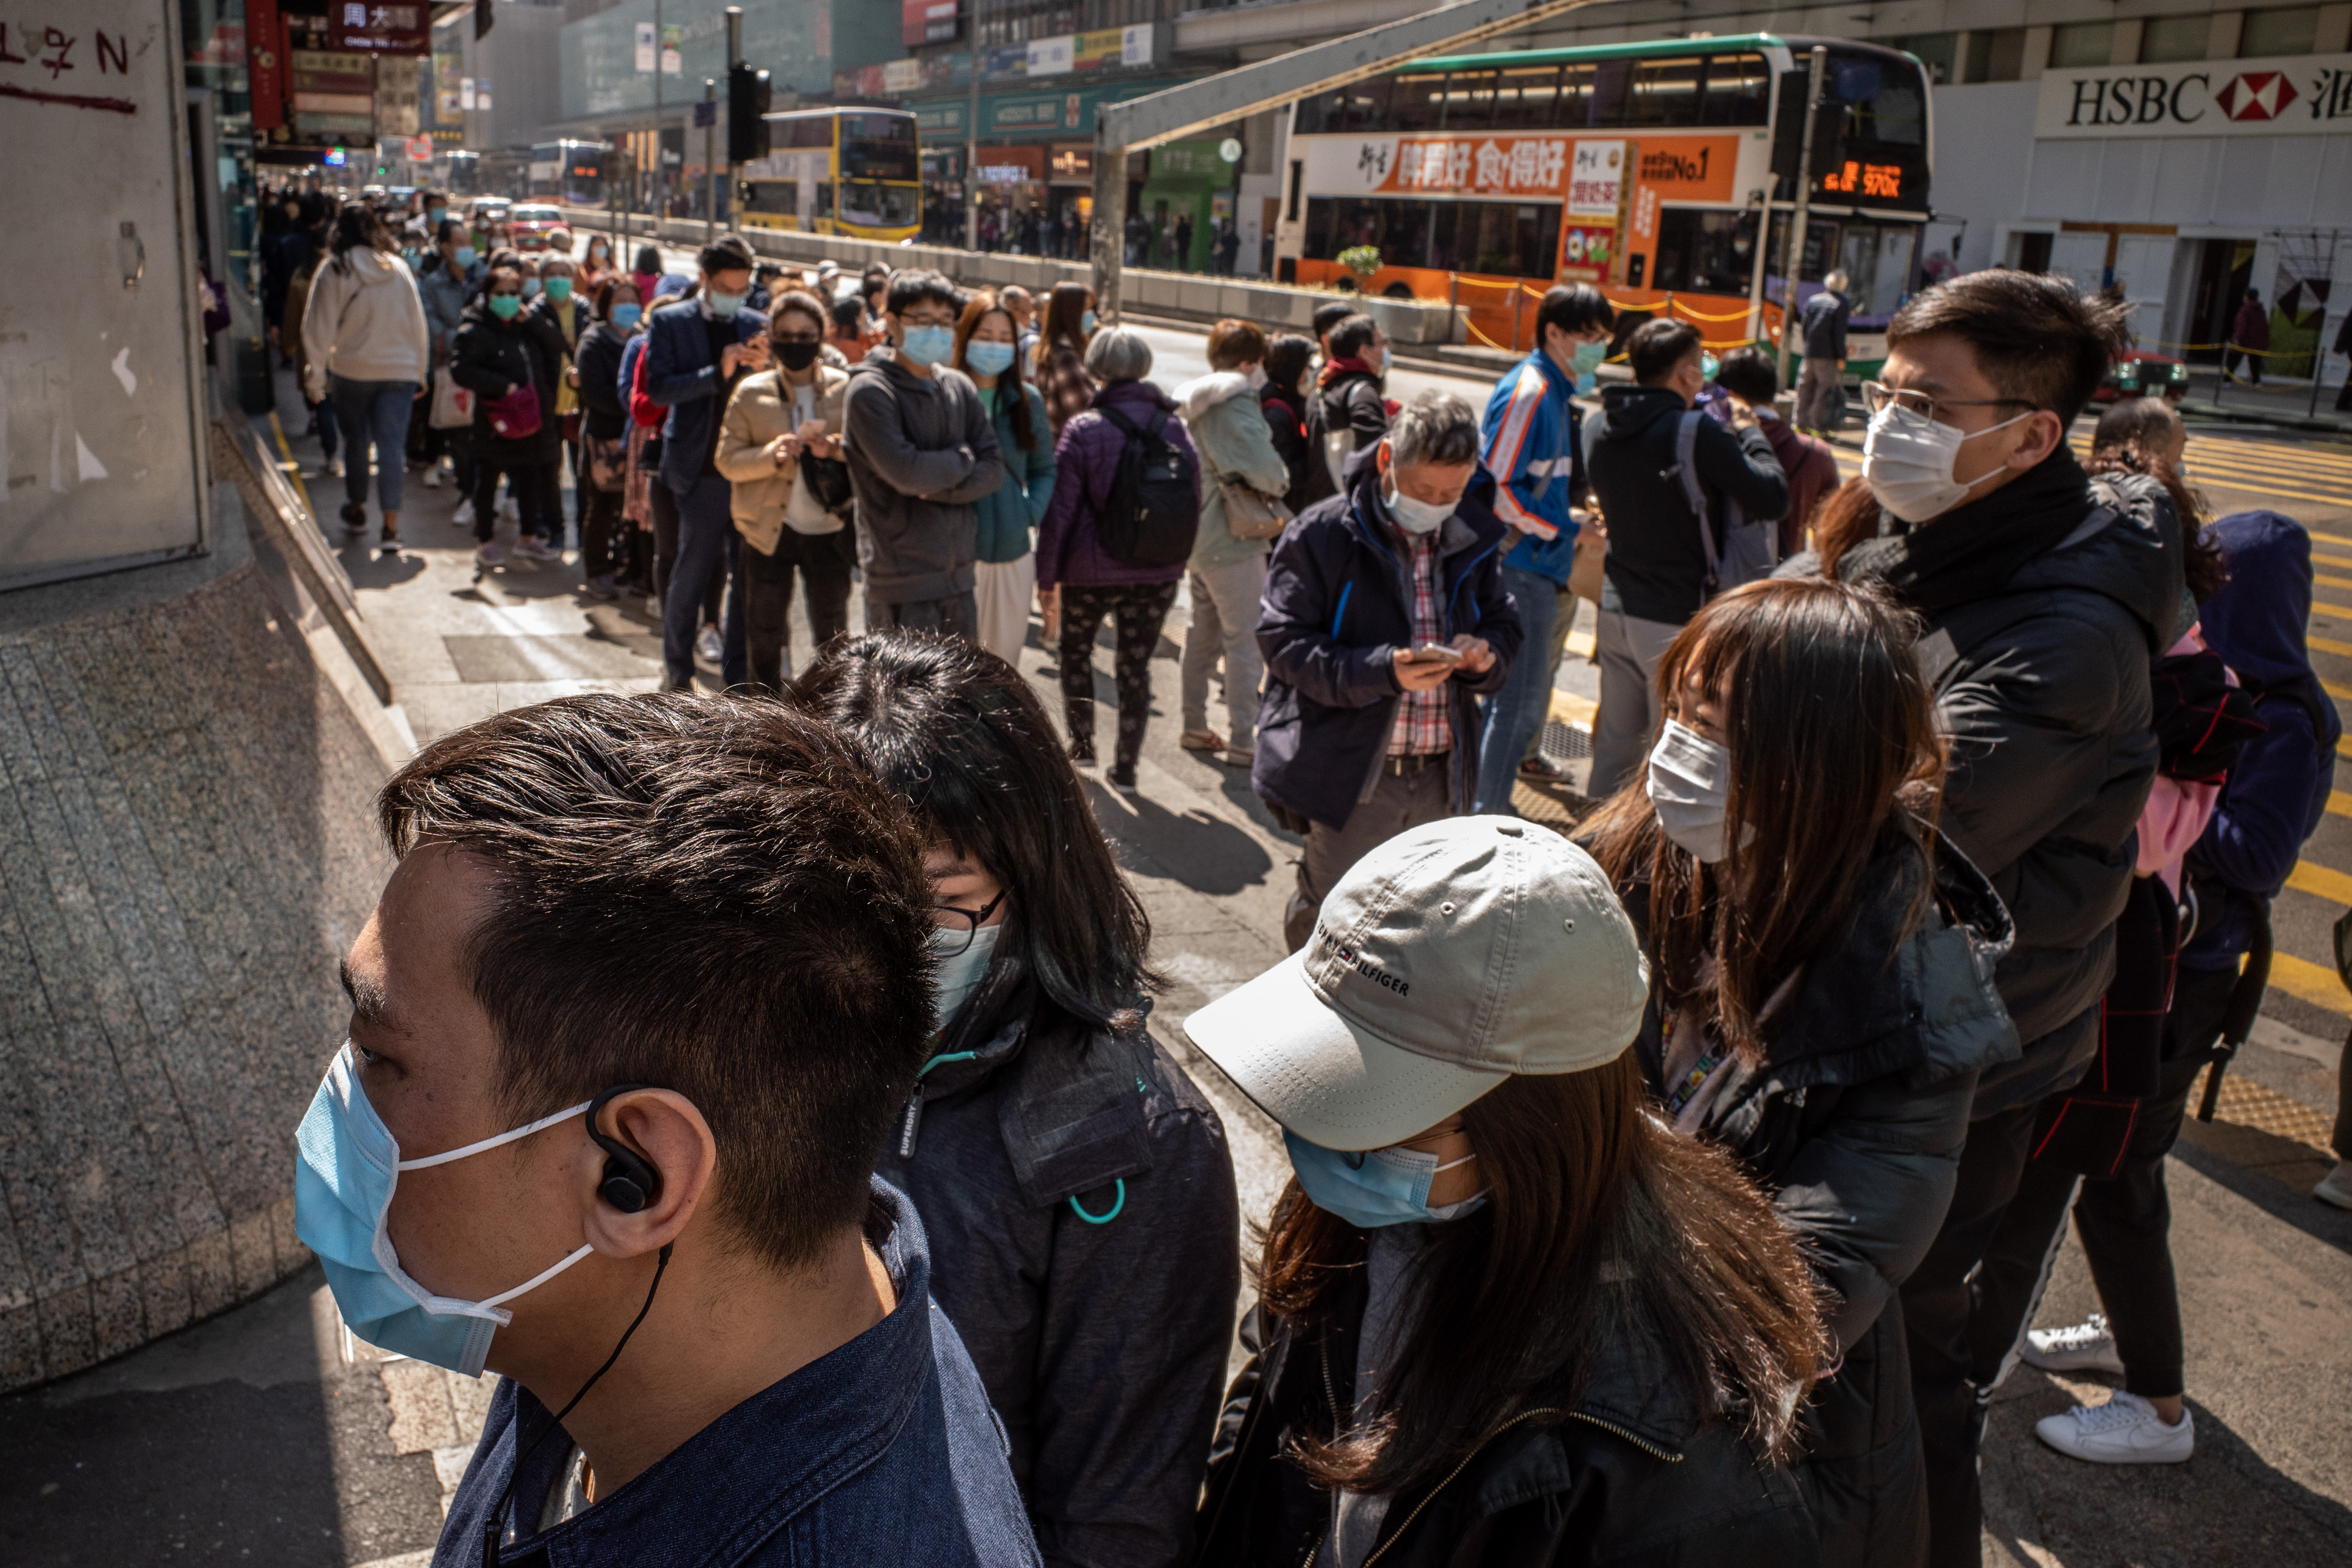 Hong Kong residents line up to buy face mask at a pharmacy on January 31, 2020.